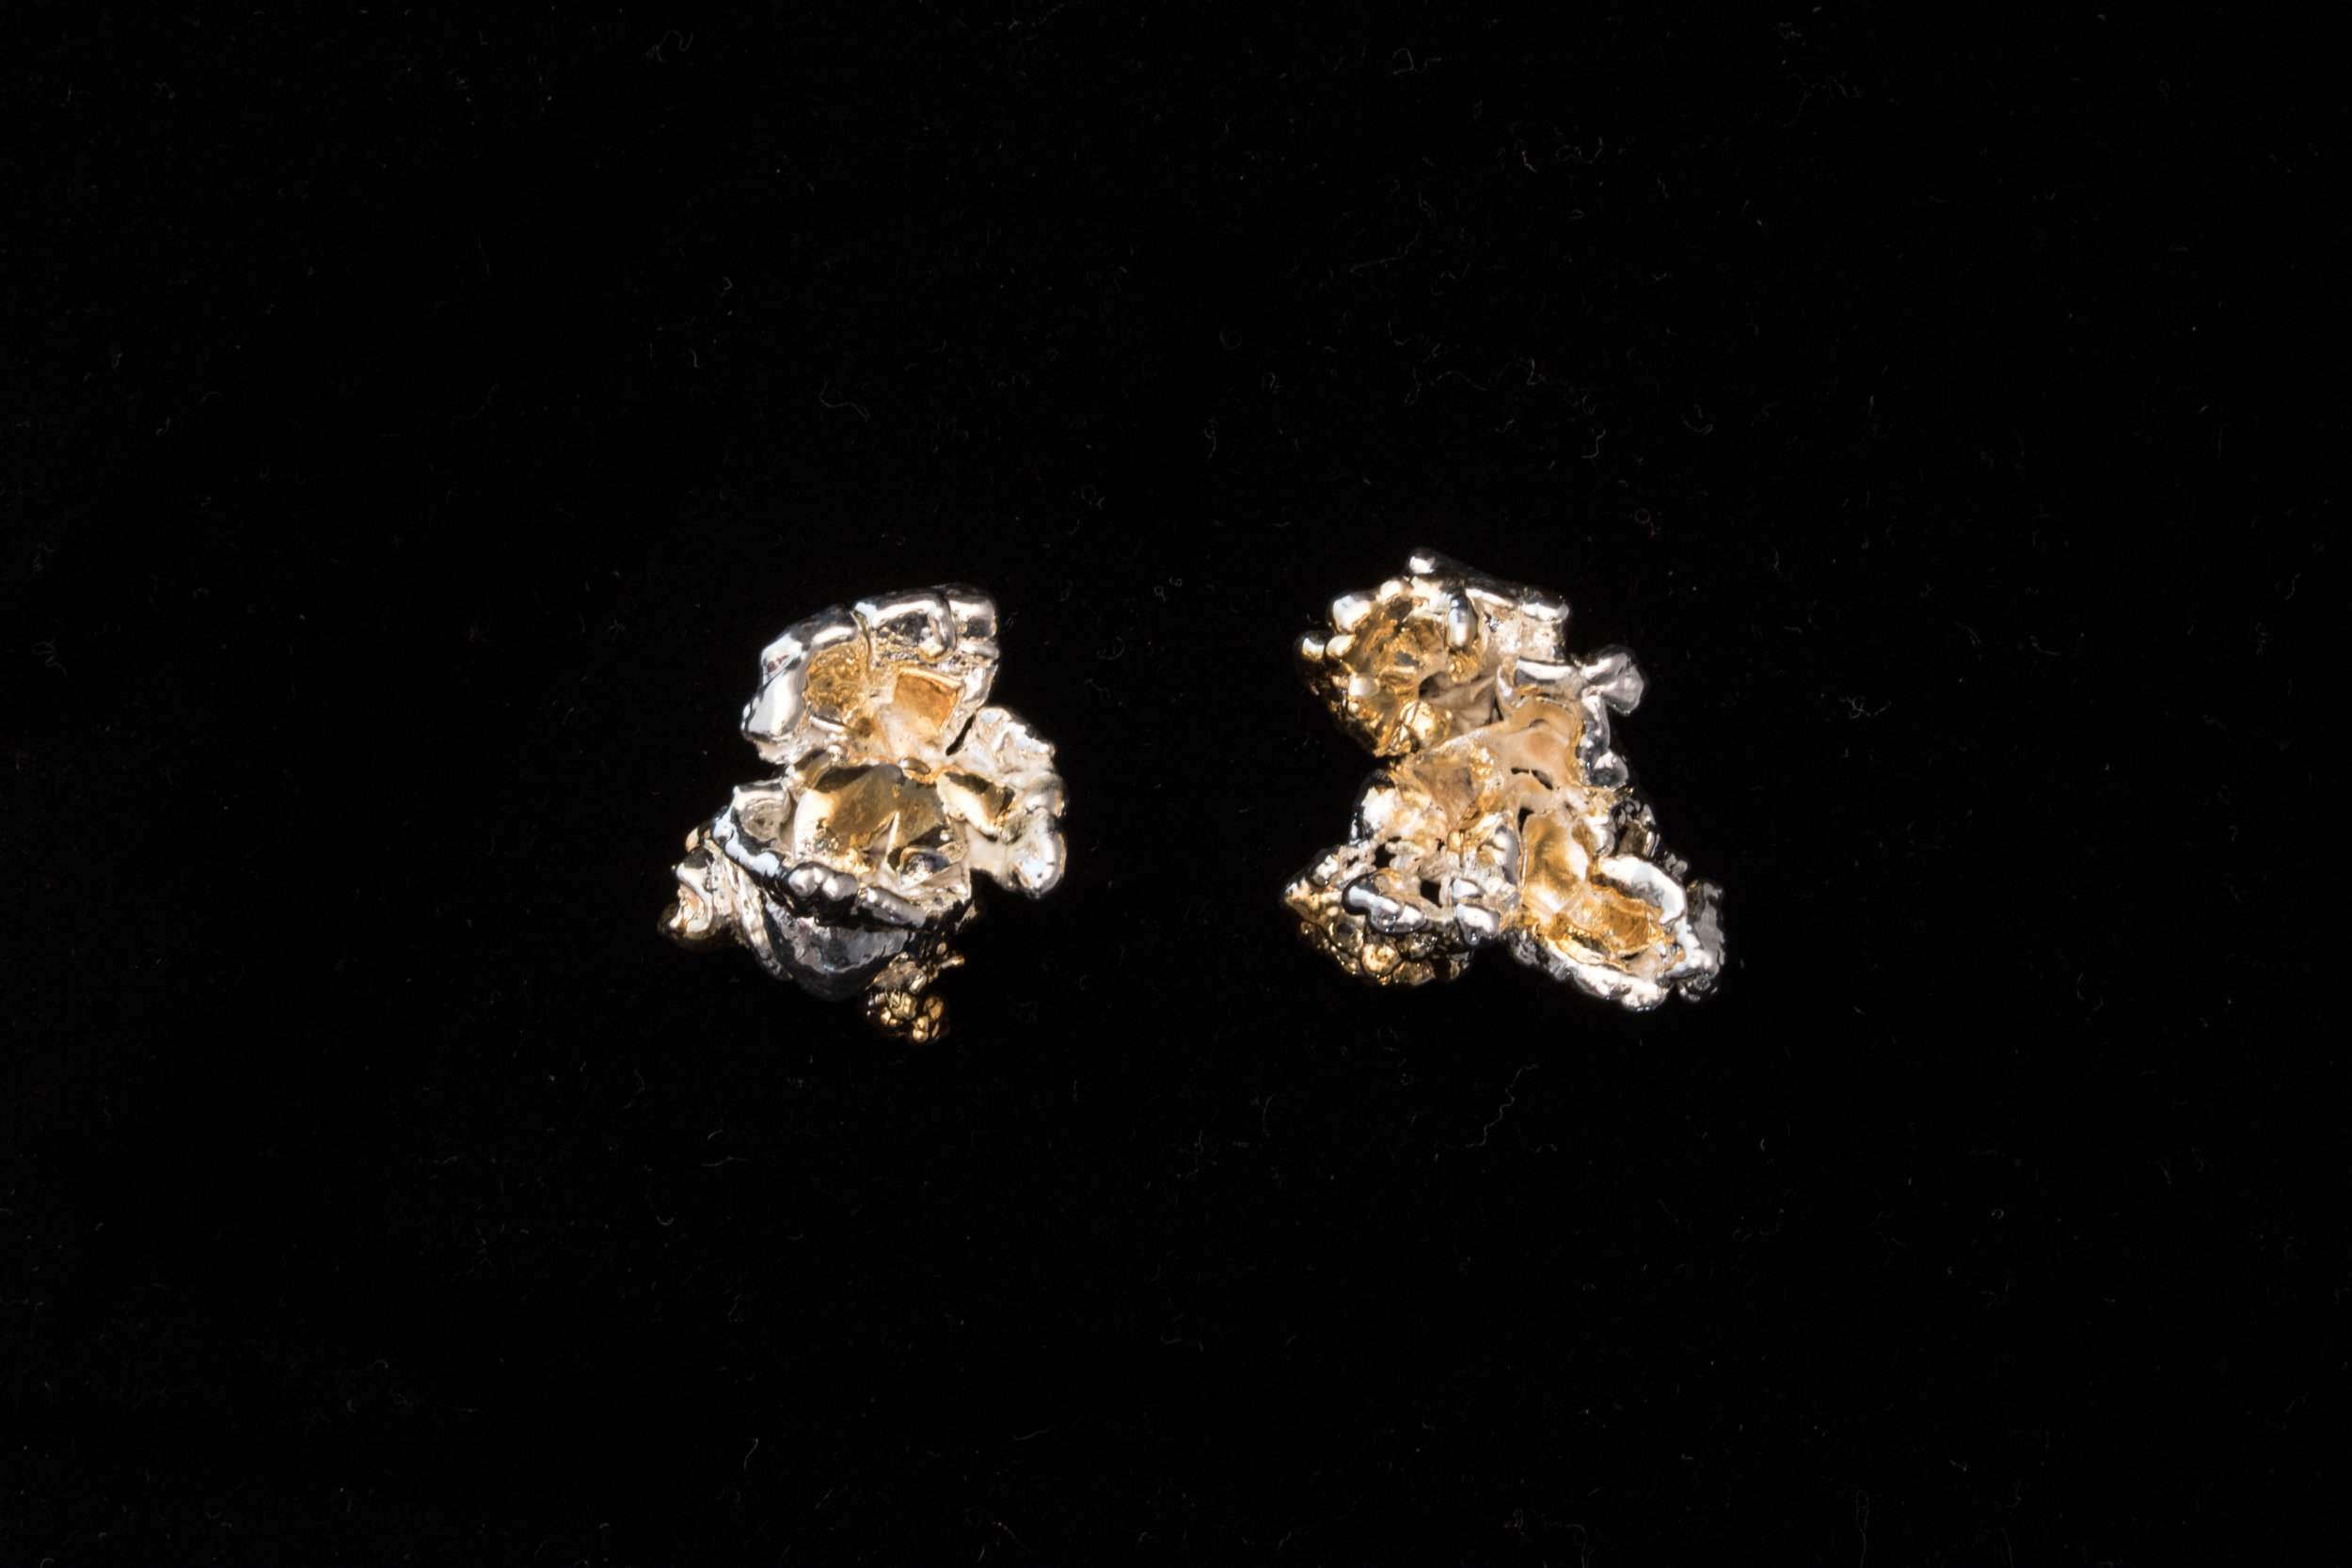 Popcorn Earrings, 2017